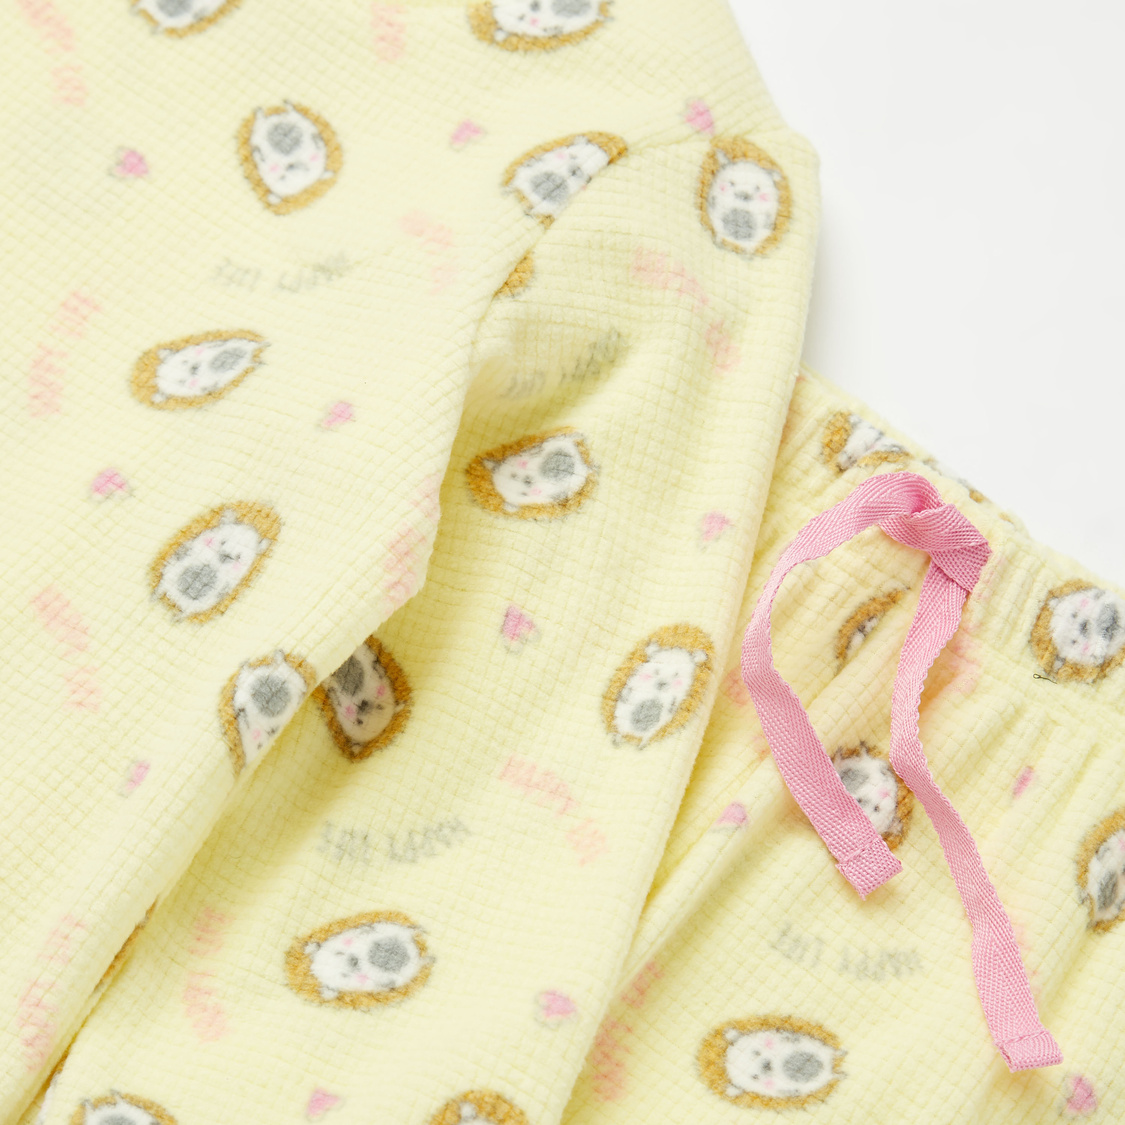 Cozy Collection Printed Long Sleeves Top and Full Length Pyjama Set